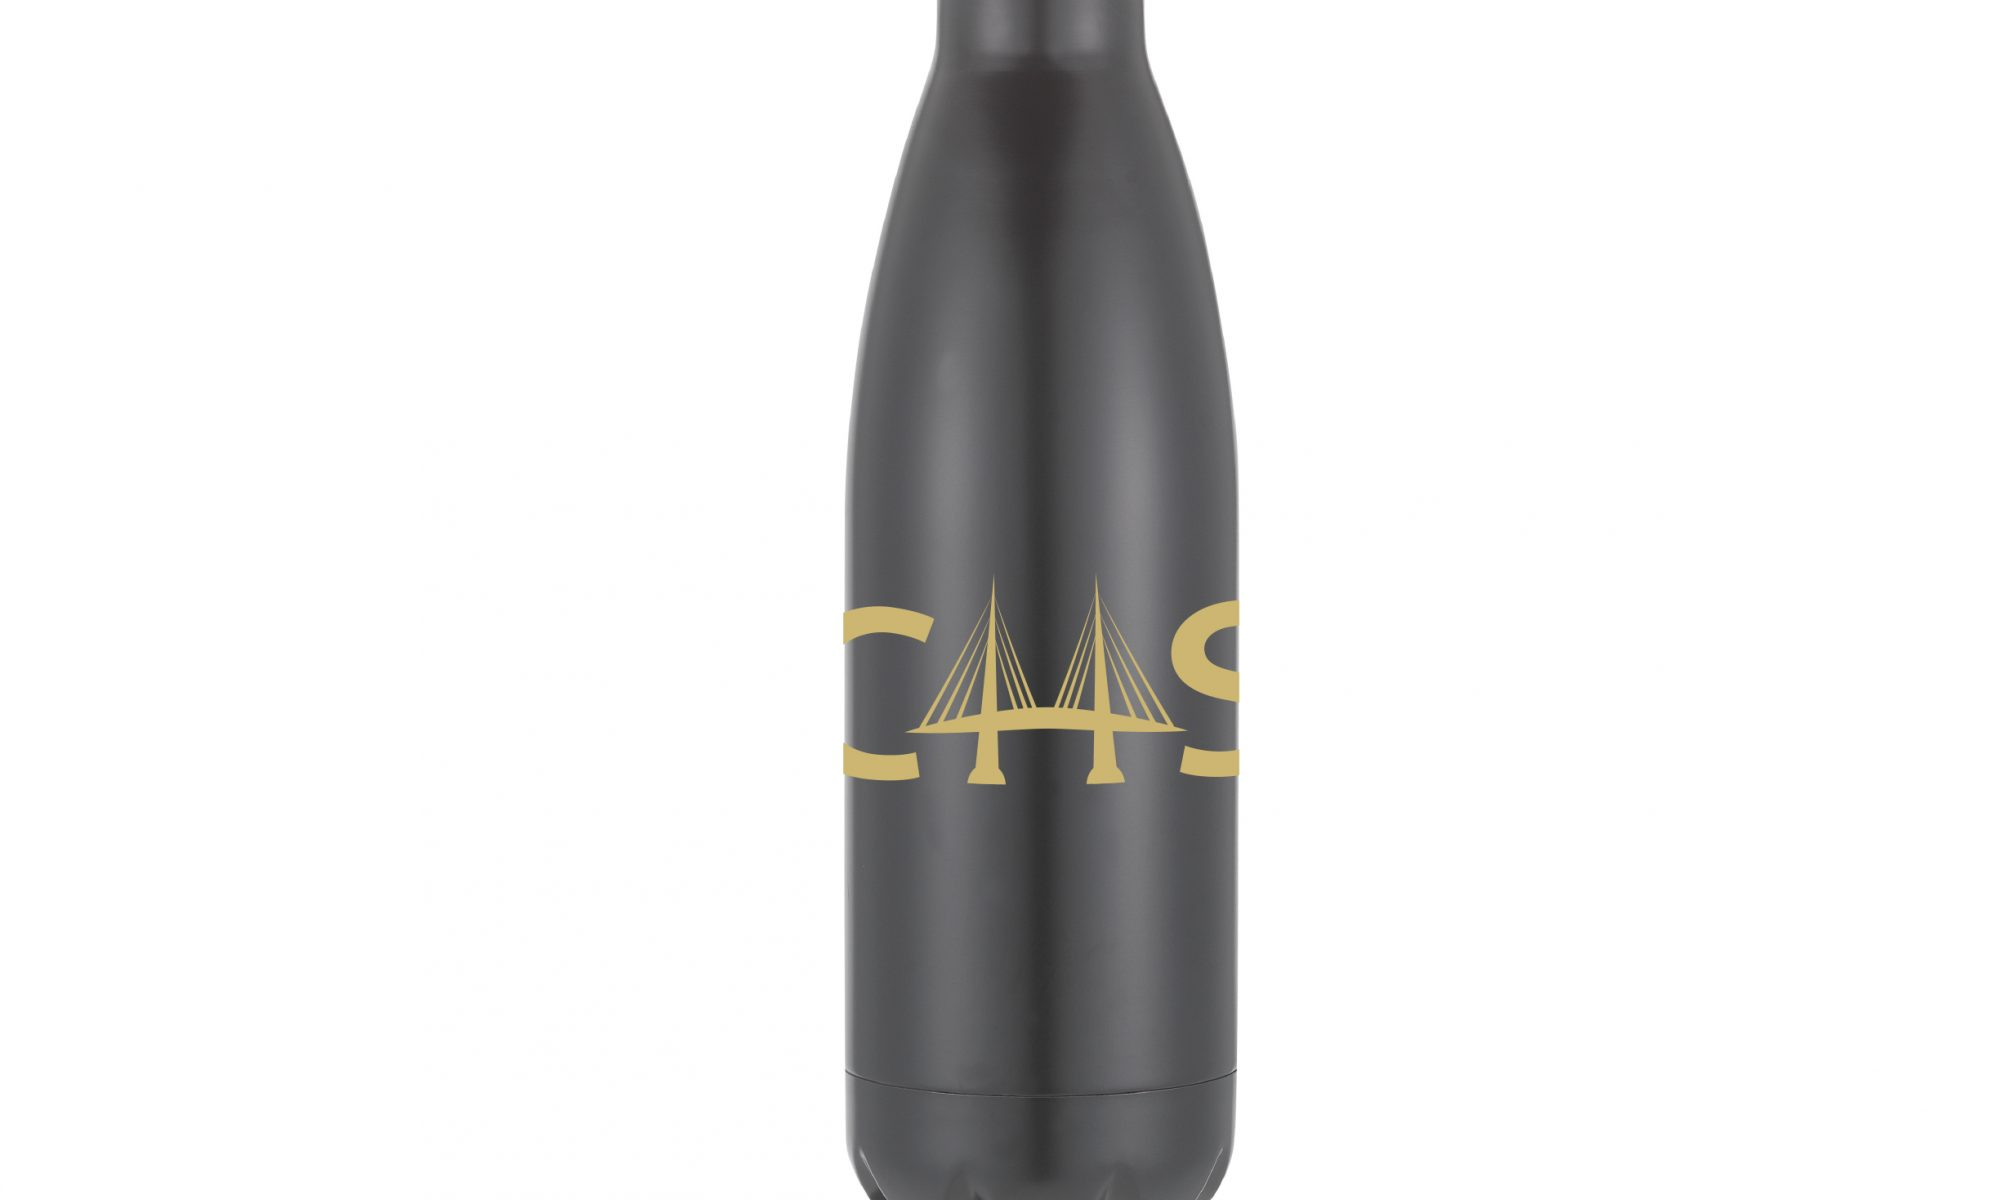 CHS LUV Bridge Stainless Steel Bottle